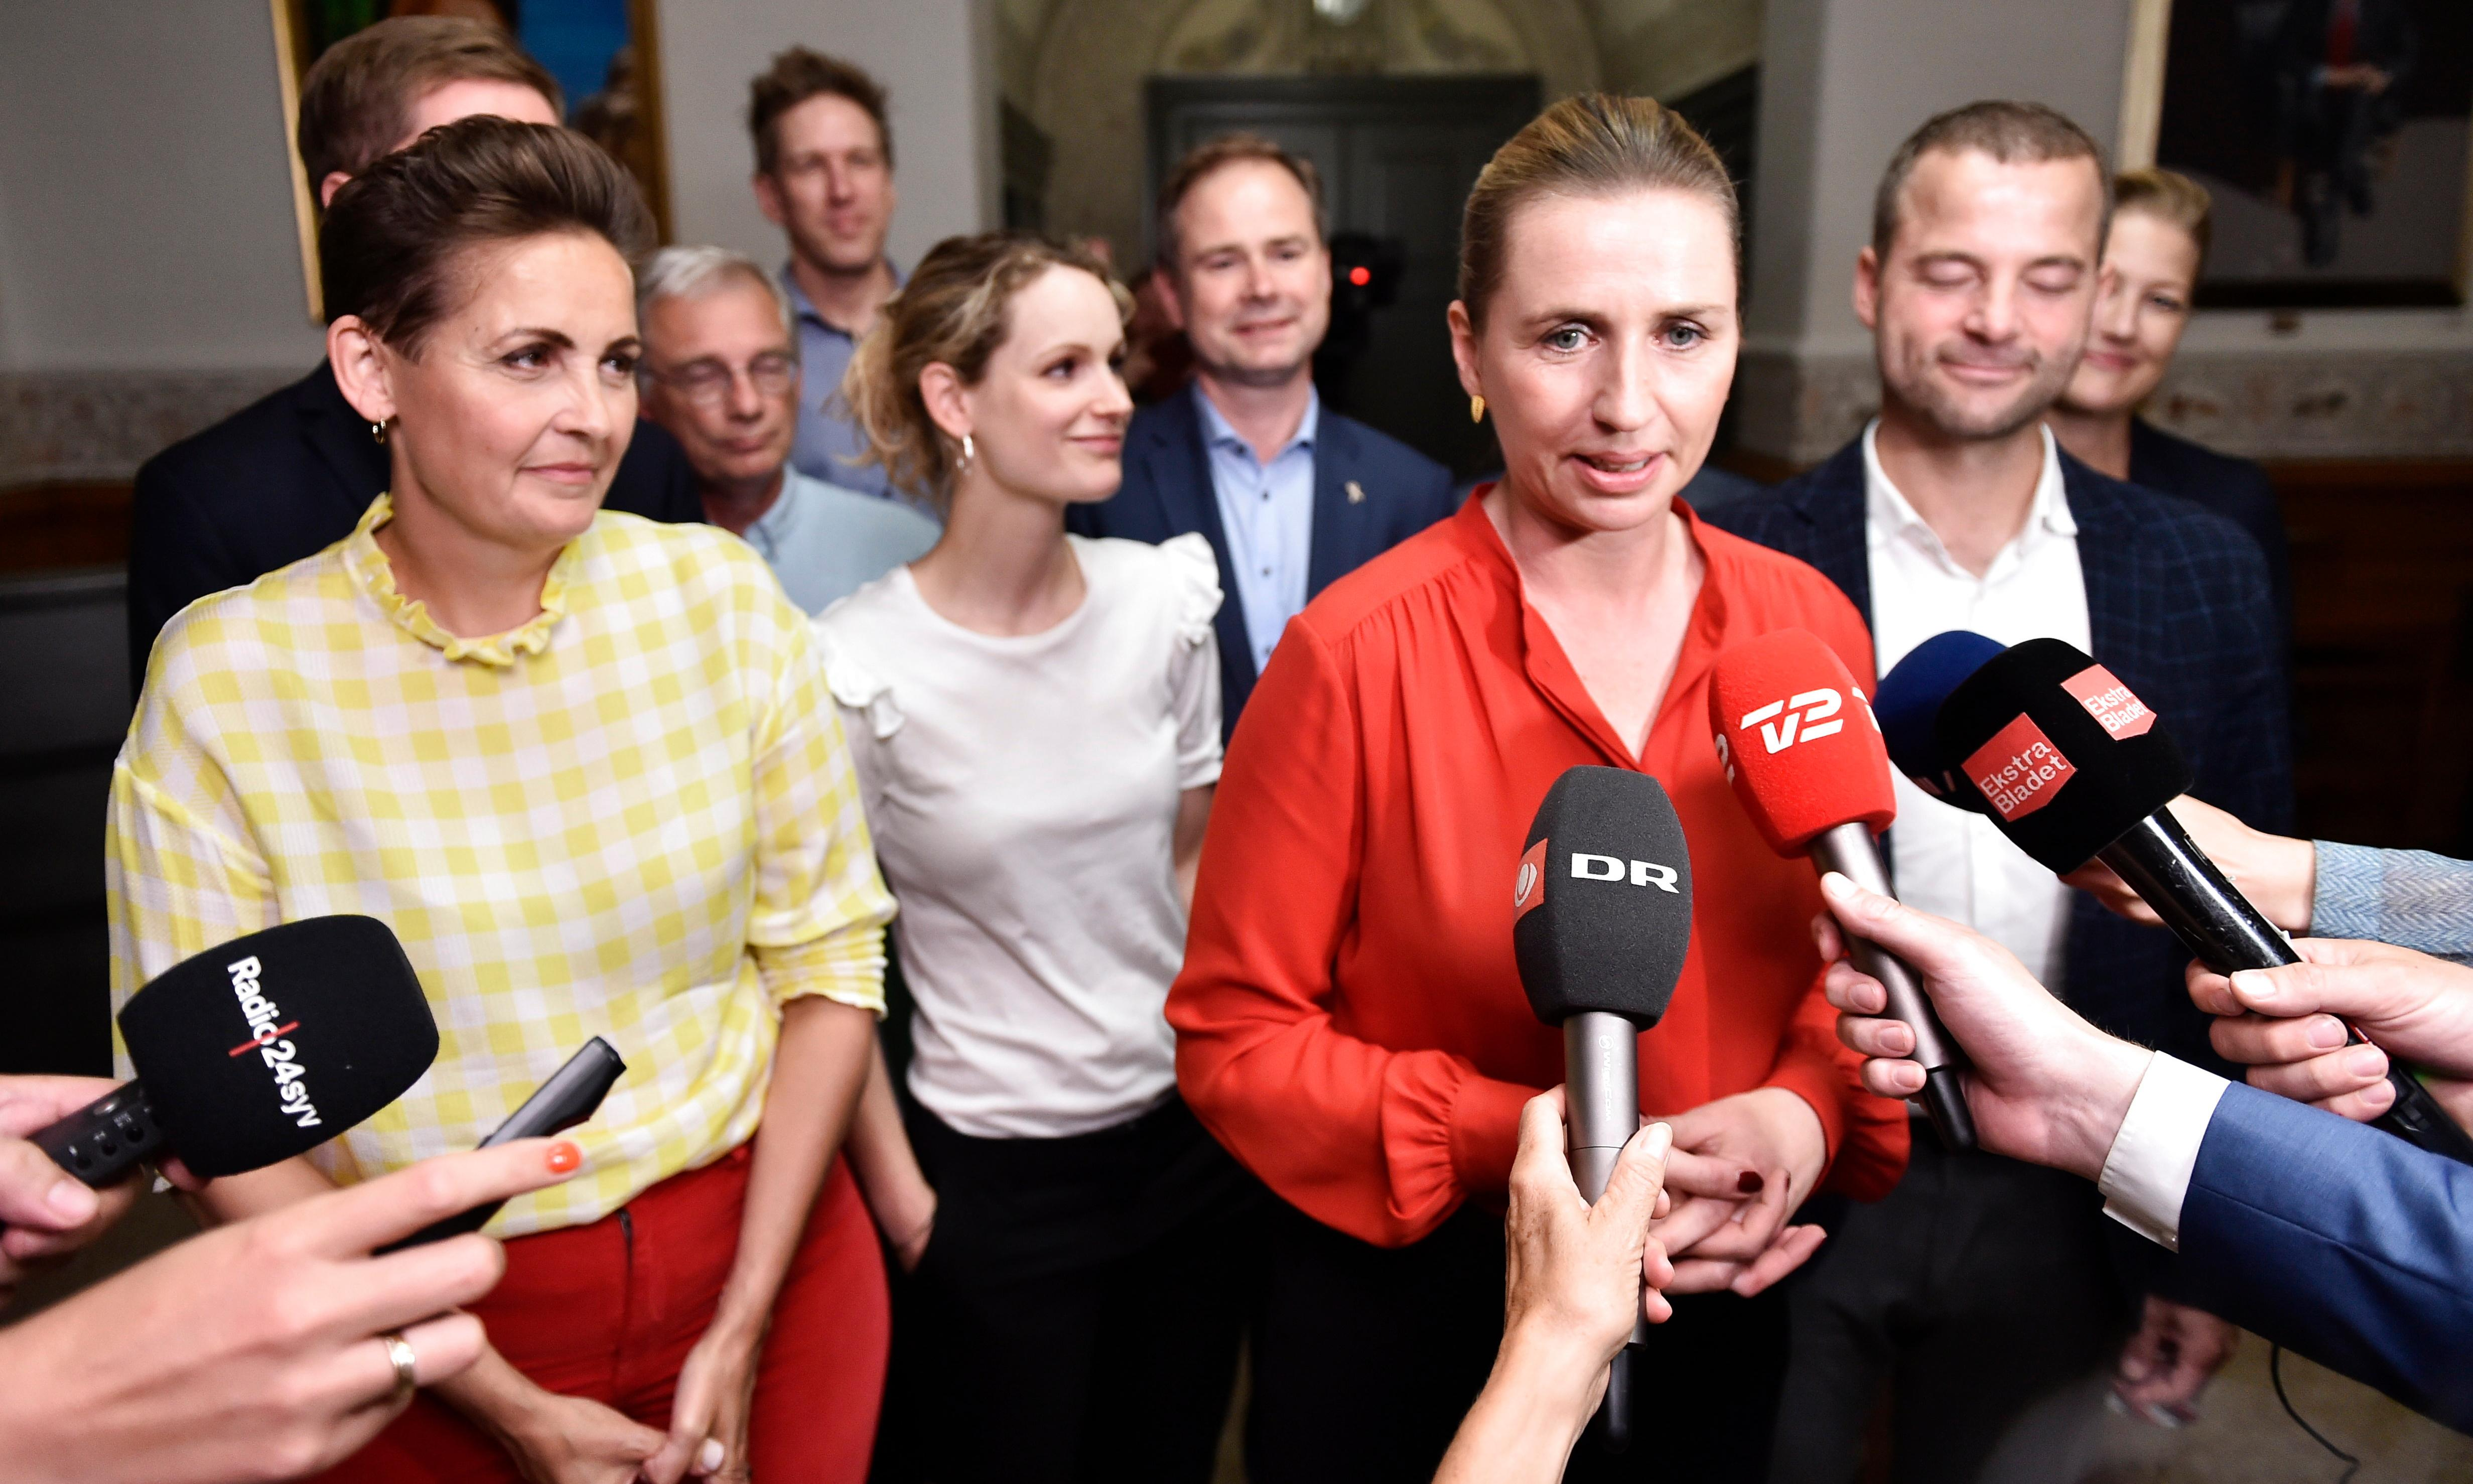 Denmark's youngest prime minister leads new leftist government